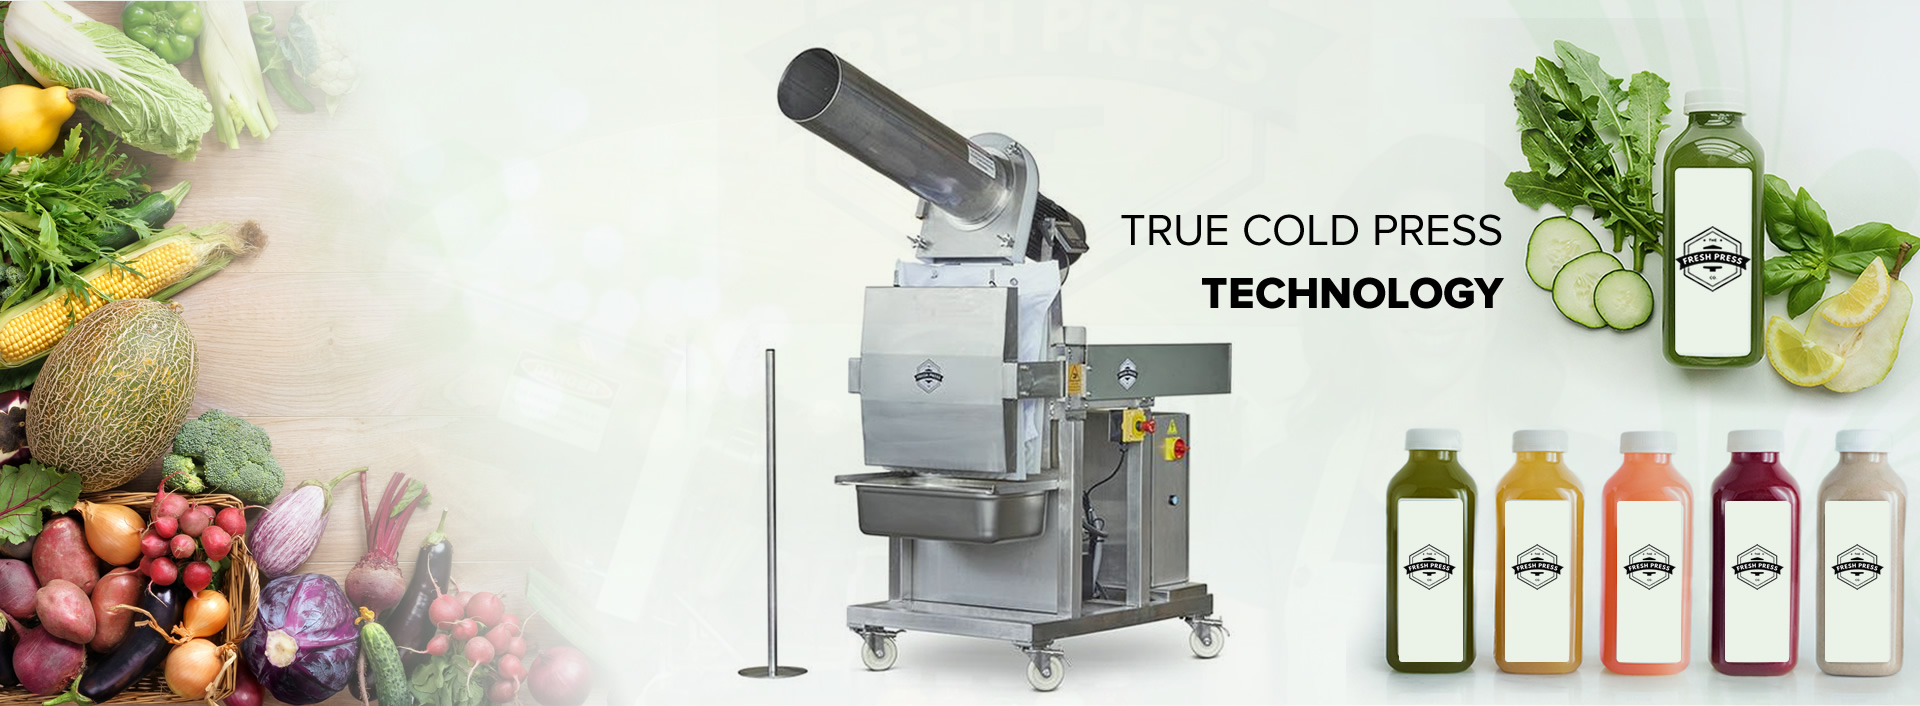 The Fresh Press Best Commercial Cold Press Juicer ...